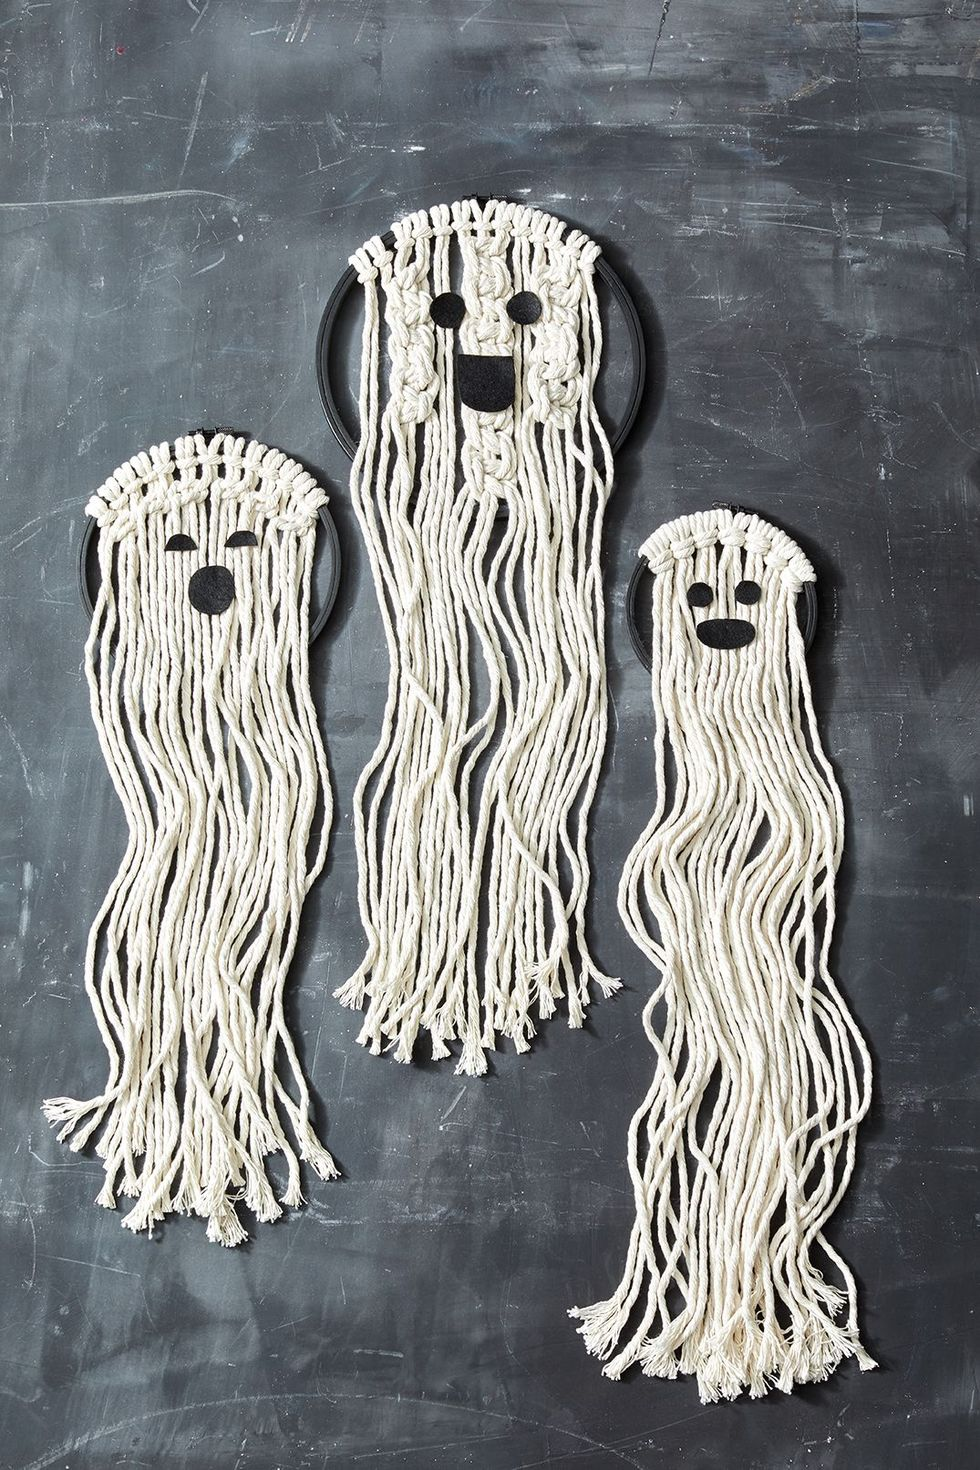 75 Easy Halloween Crafts for Adults Who Love All Things Spooky and Spidery